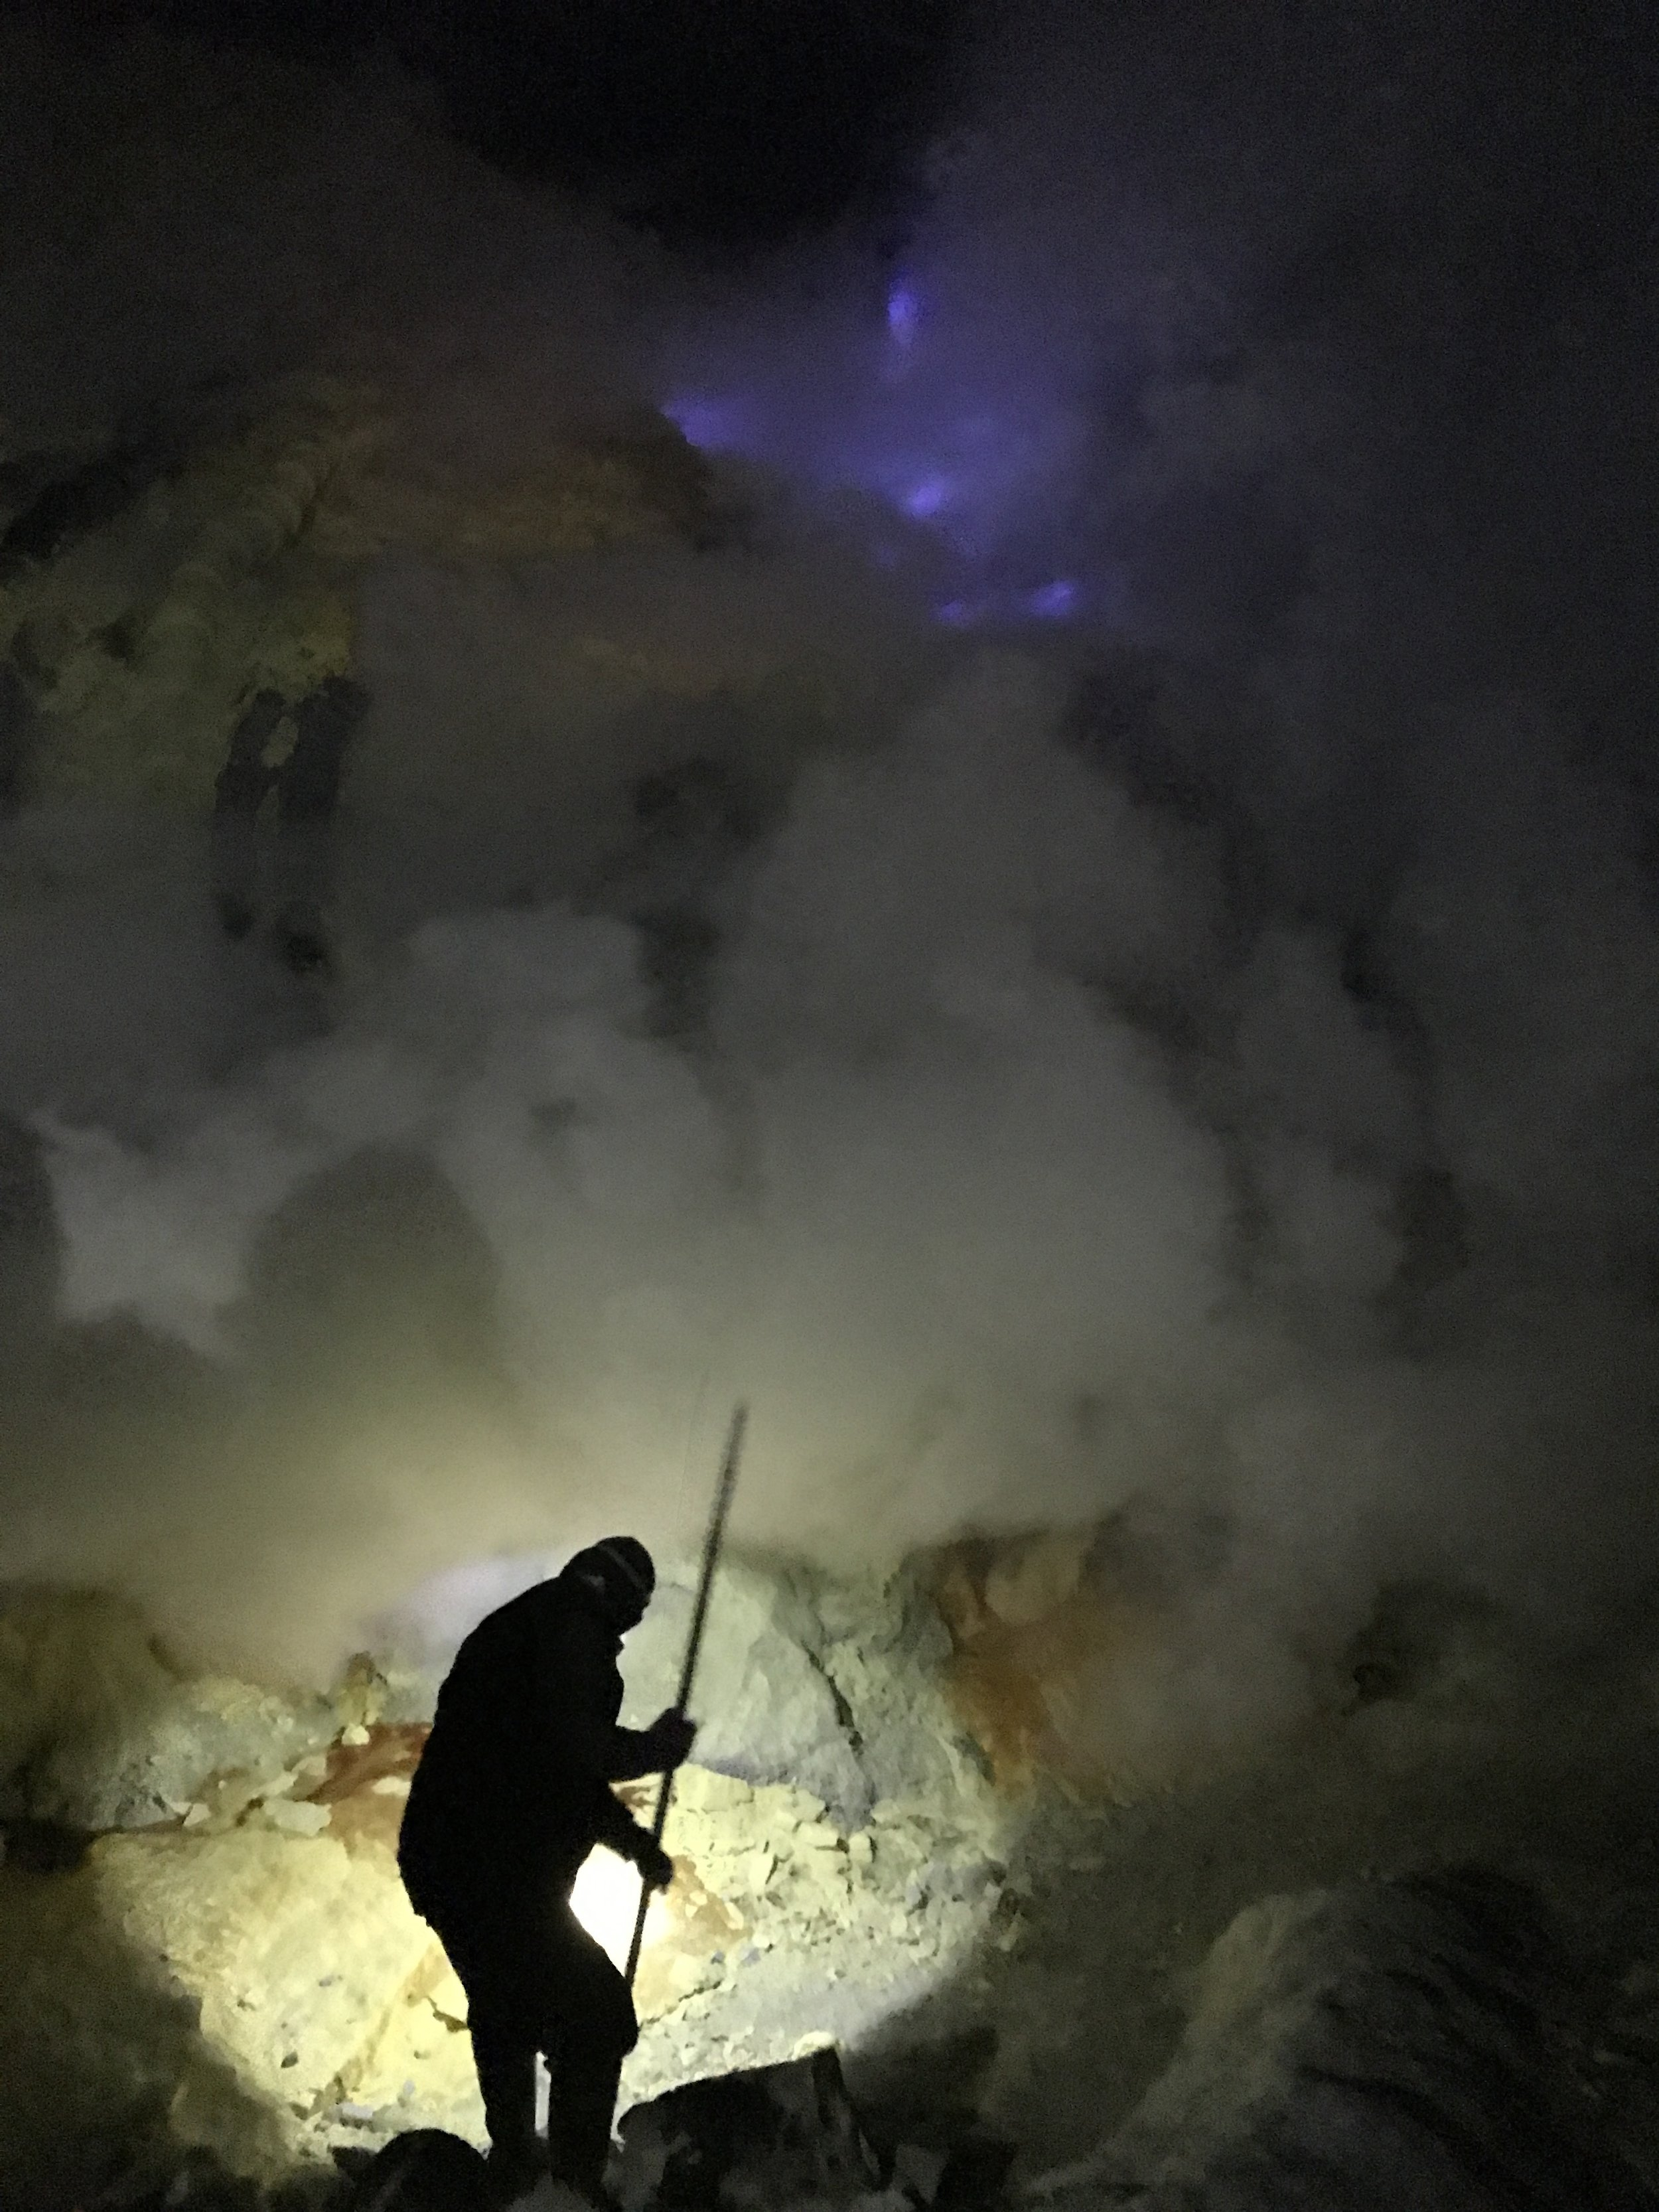 A miner chipping at the sulfur